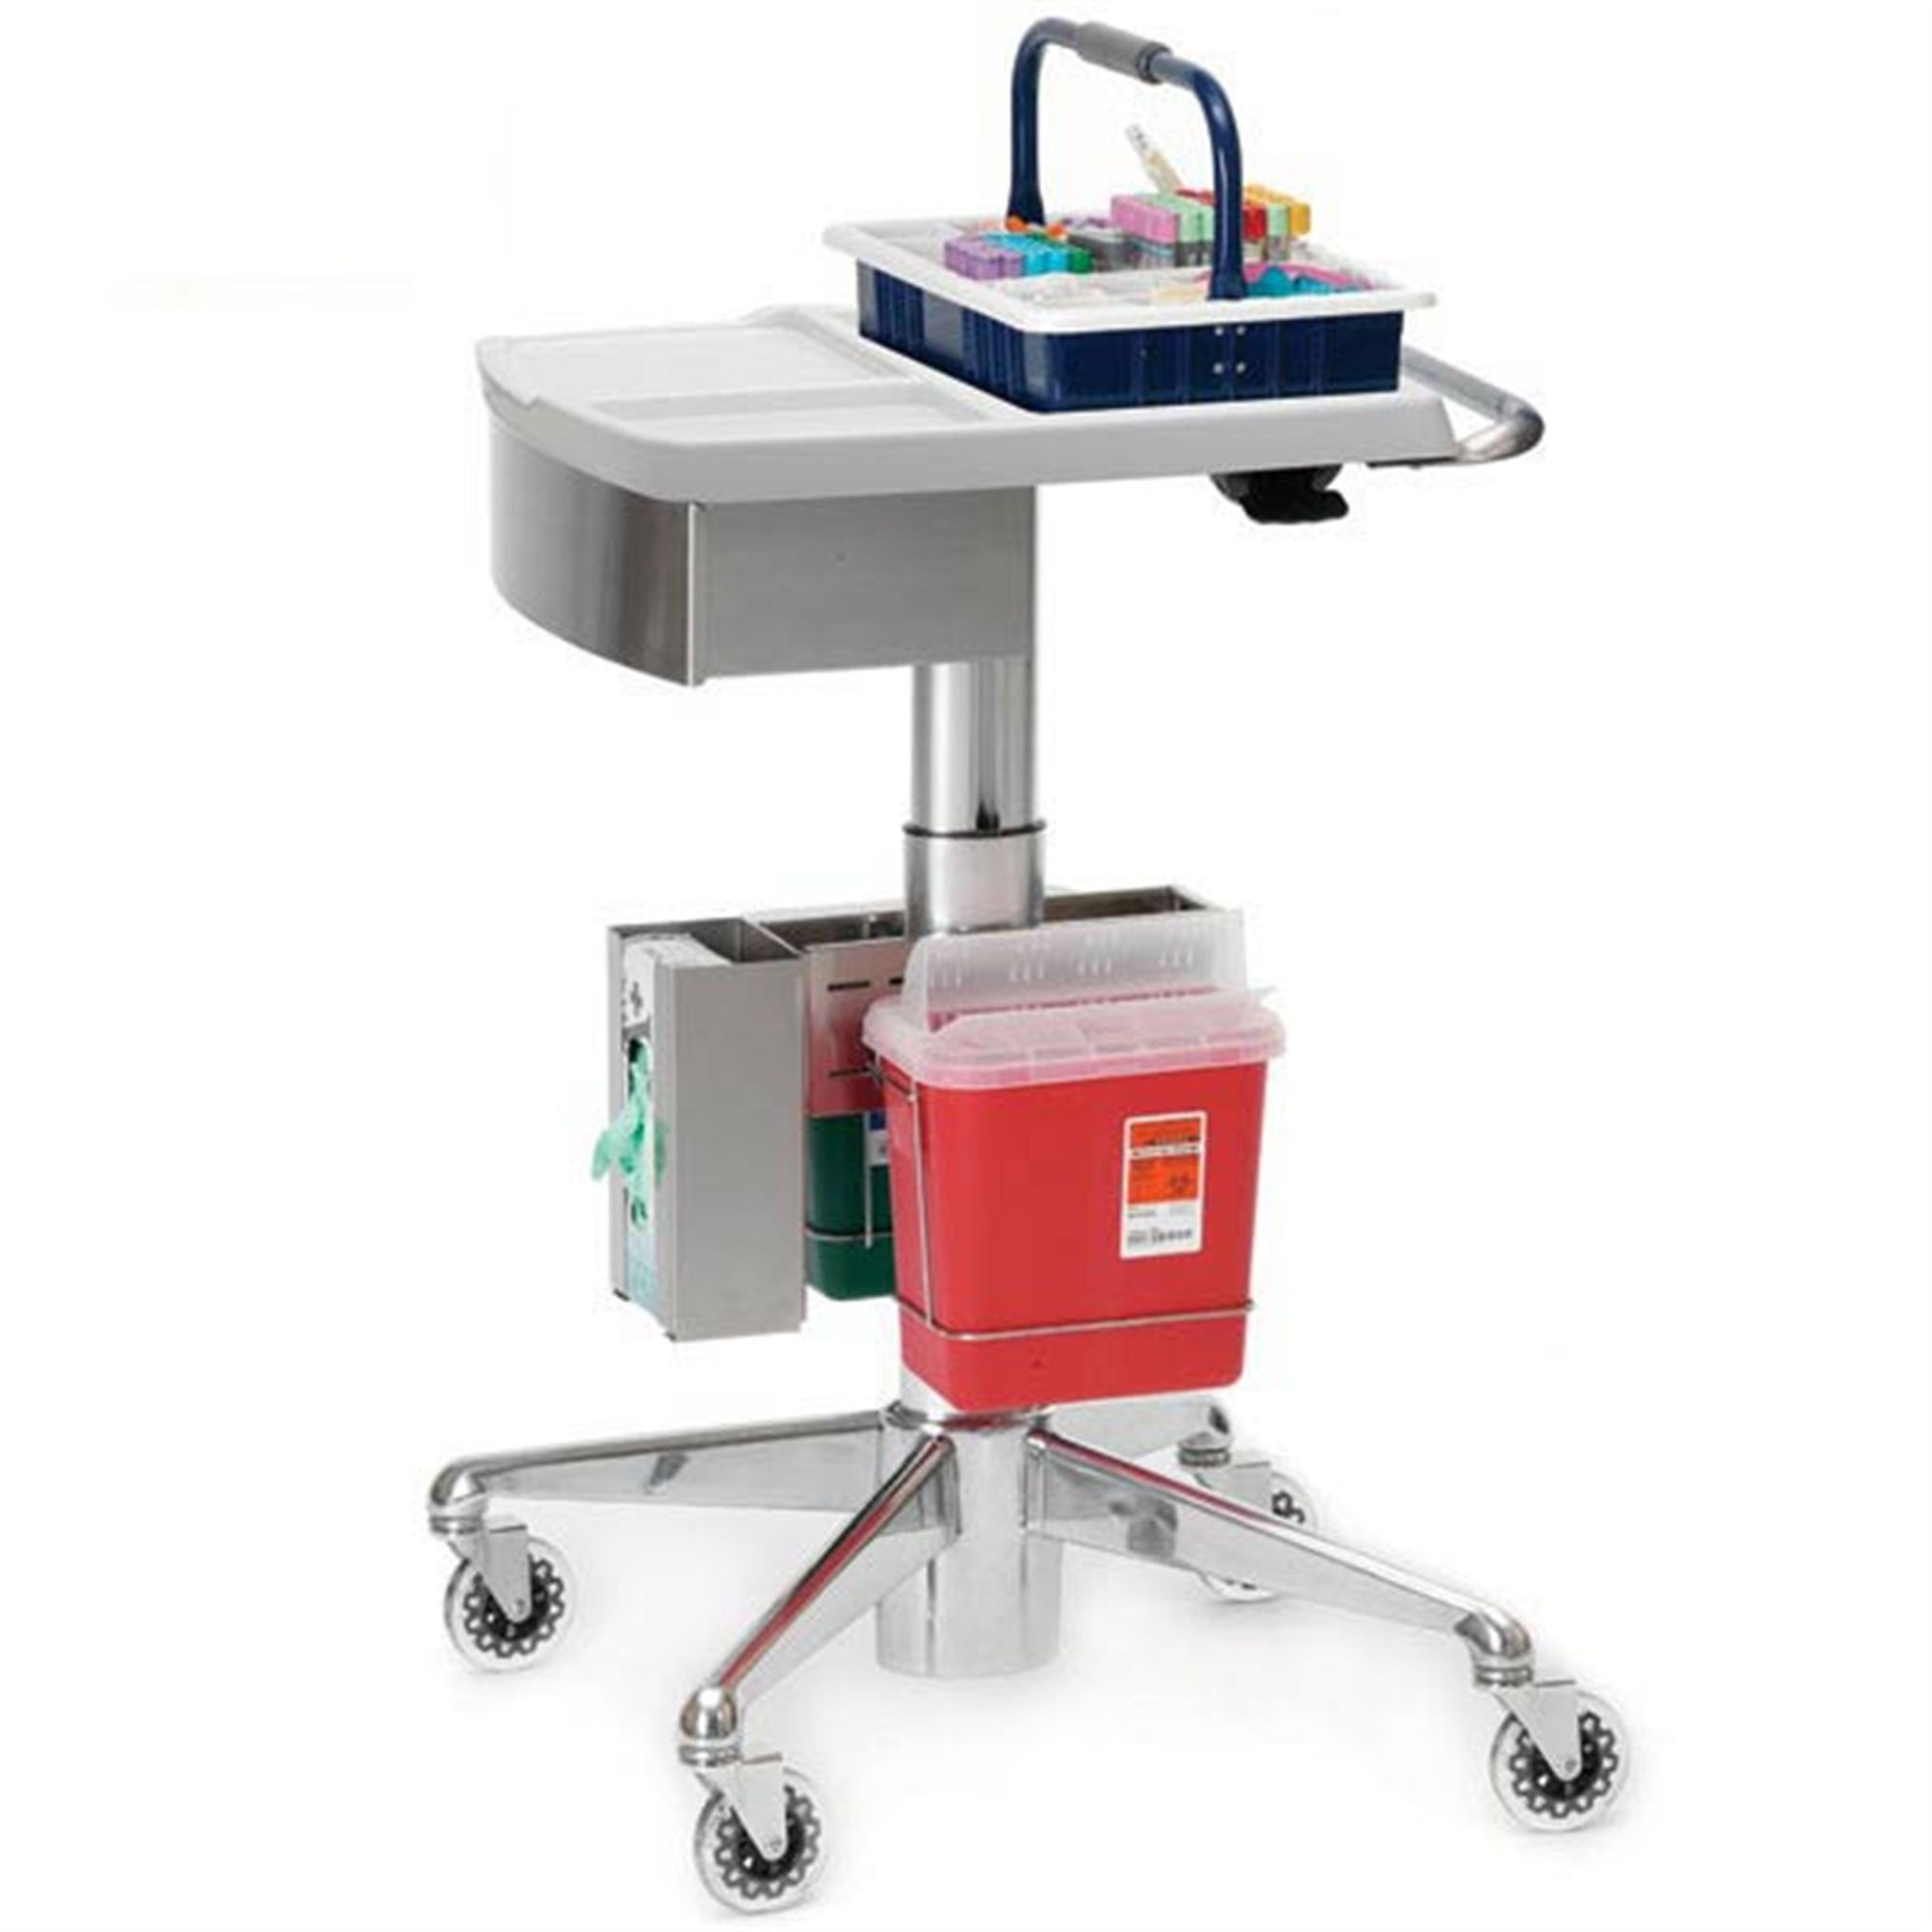 Top 3 Suppliers of Phlebotomy Carts